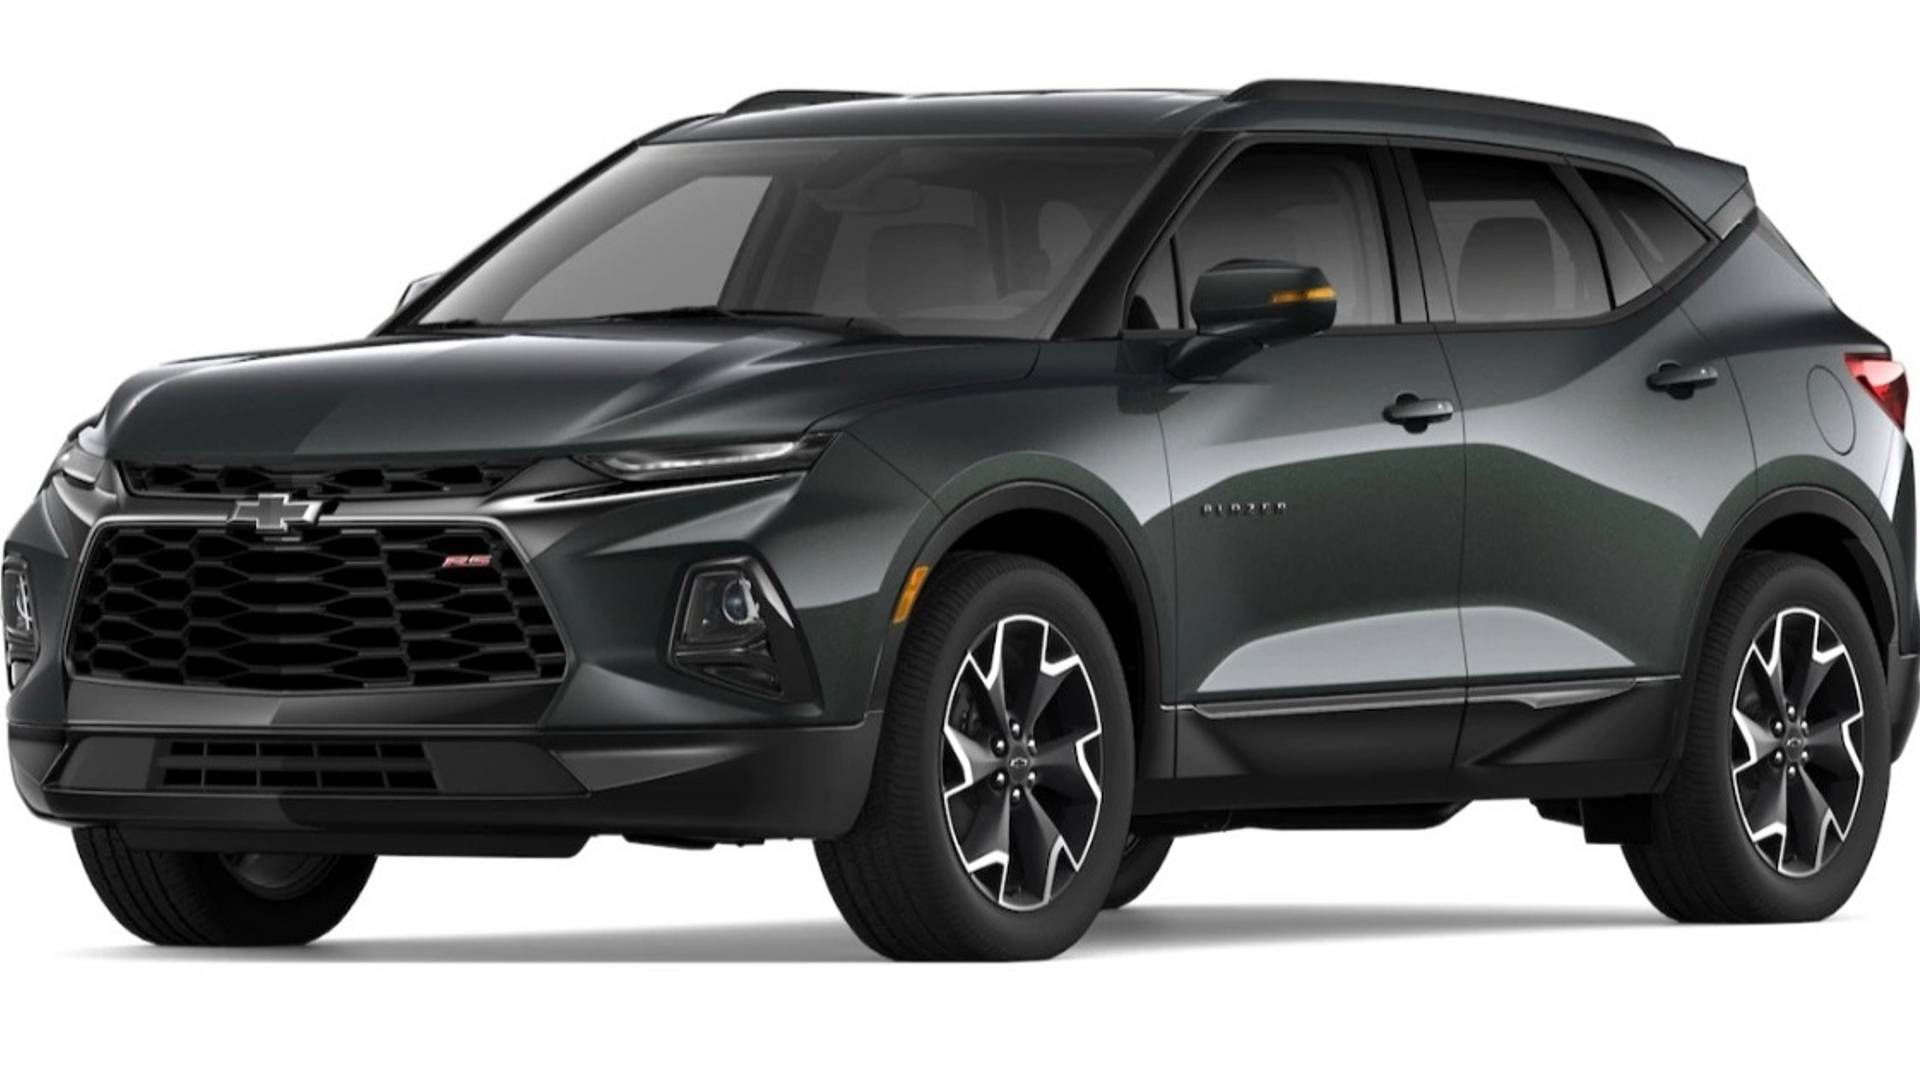 2019 Chevy Blazer | Best new cars for 2020